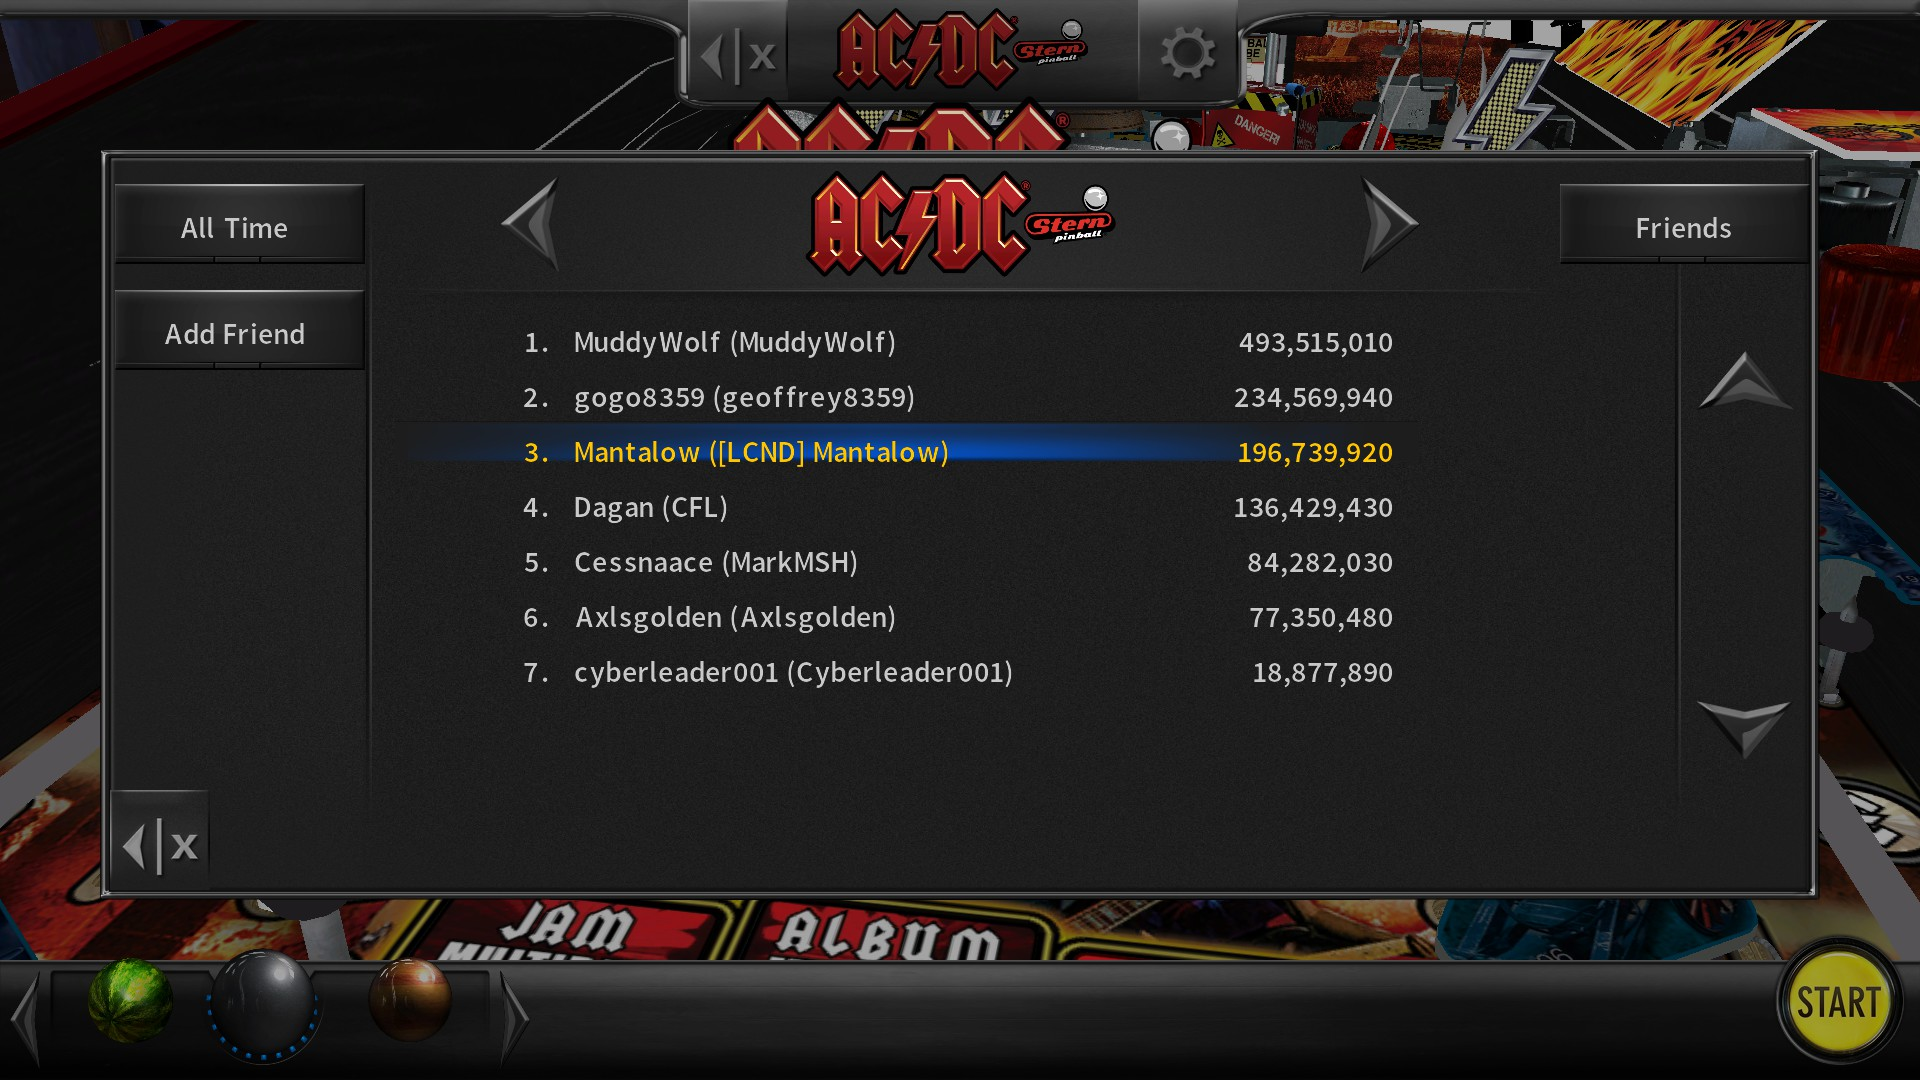 Mantalow: Stern Pinball Arcade: AC/DC (PC) 196,739,920 points on 2018-09-08 11:56:41